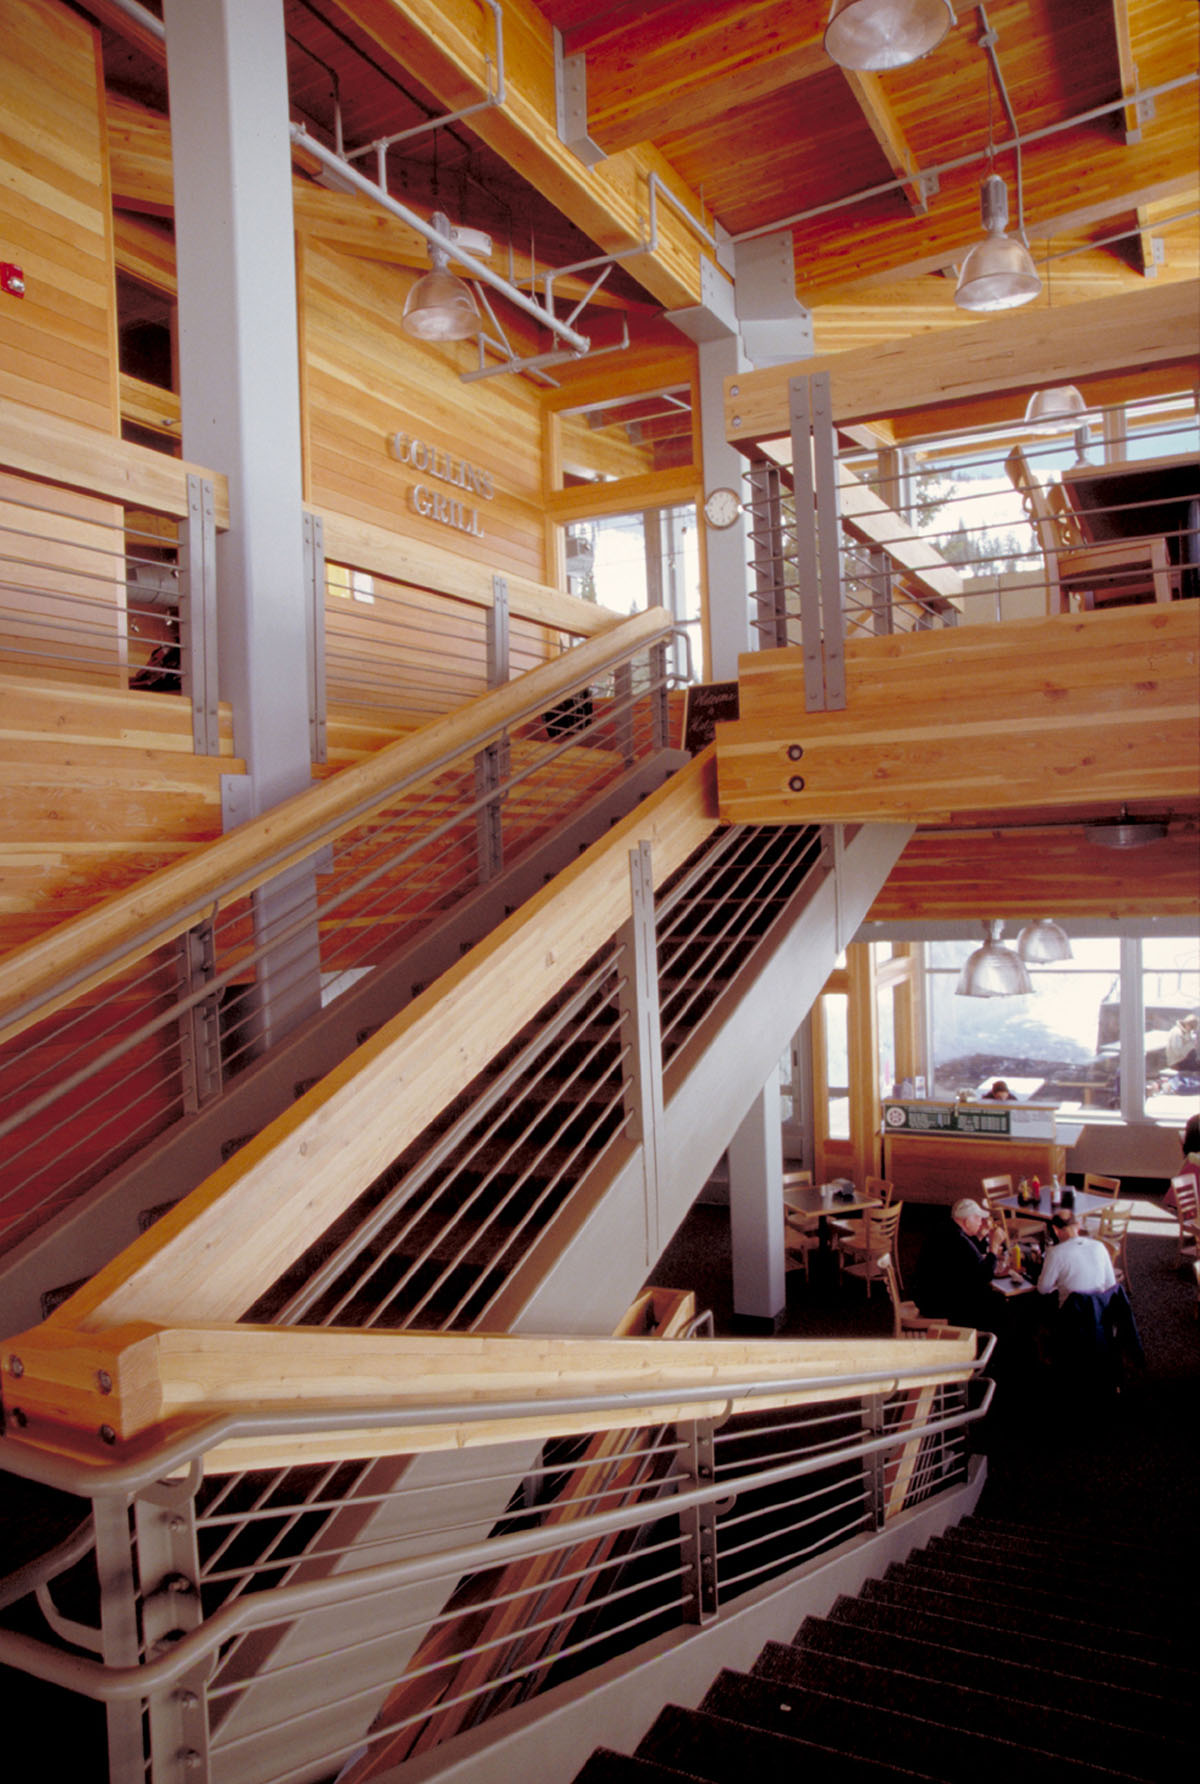 Interior of the Watson Shelter with wood paneling and metal stair rail.